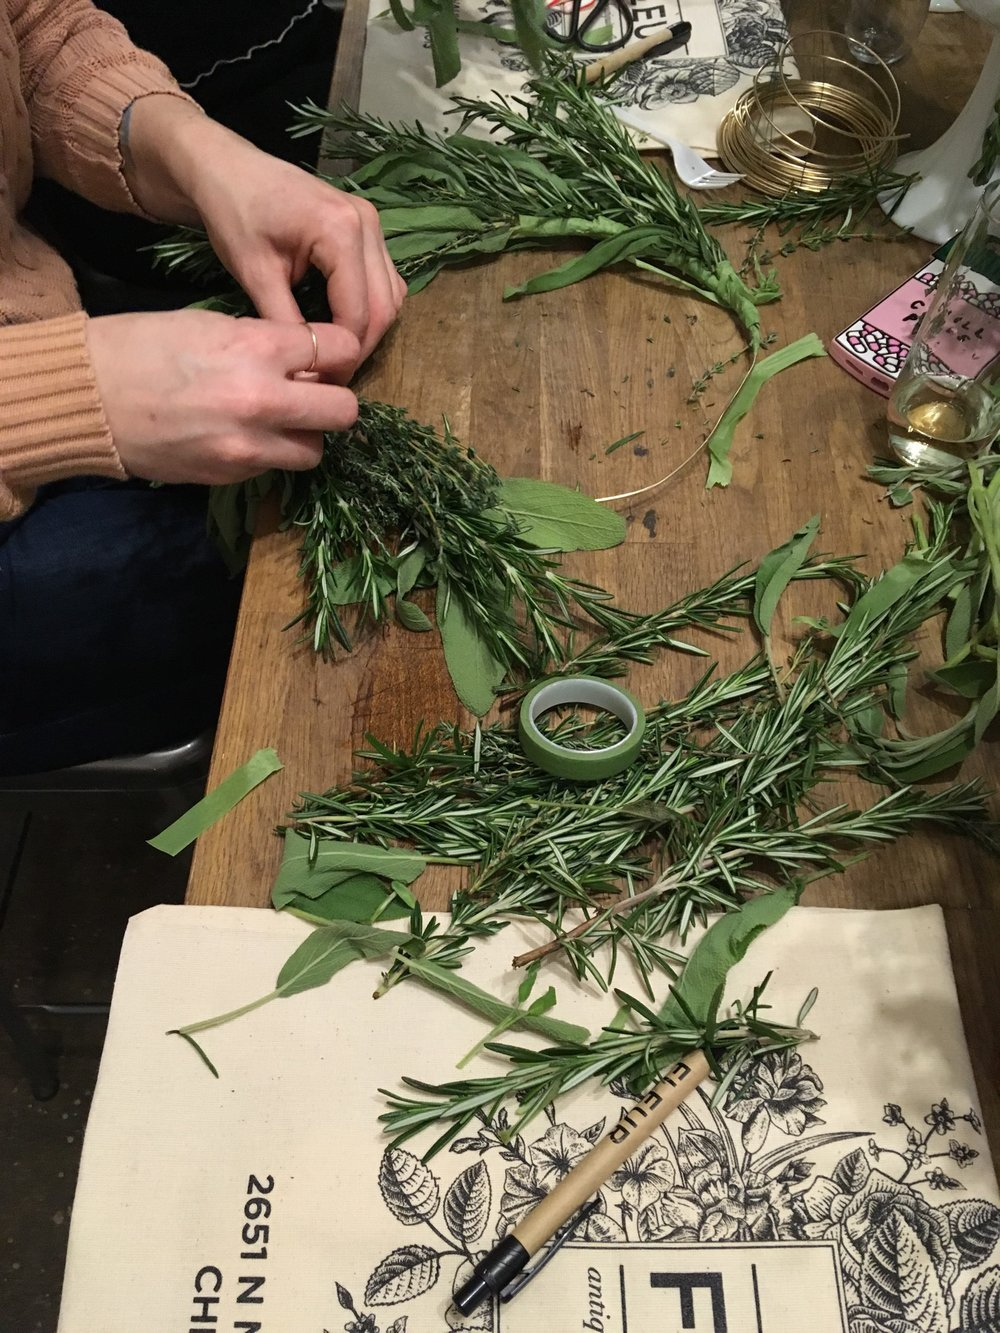 Herb-Wreath-Making-Class-Fleur-Inc-Logan-Square